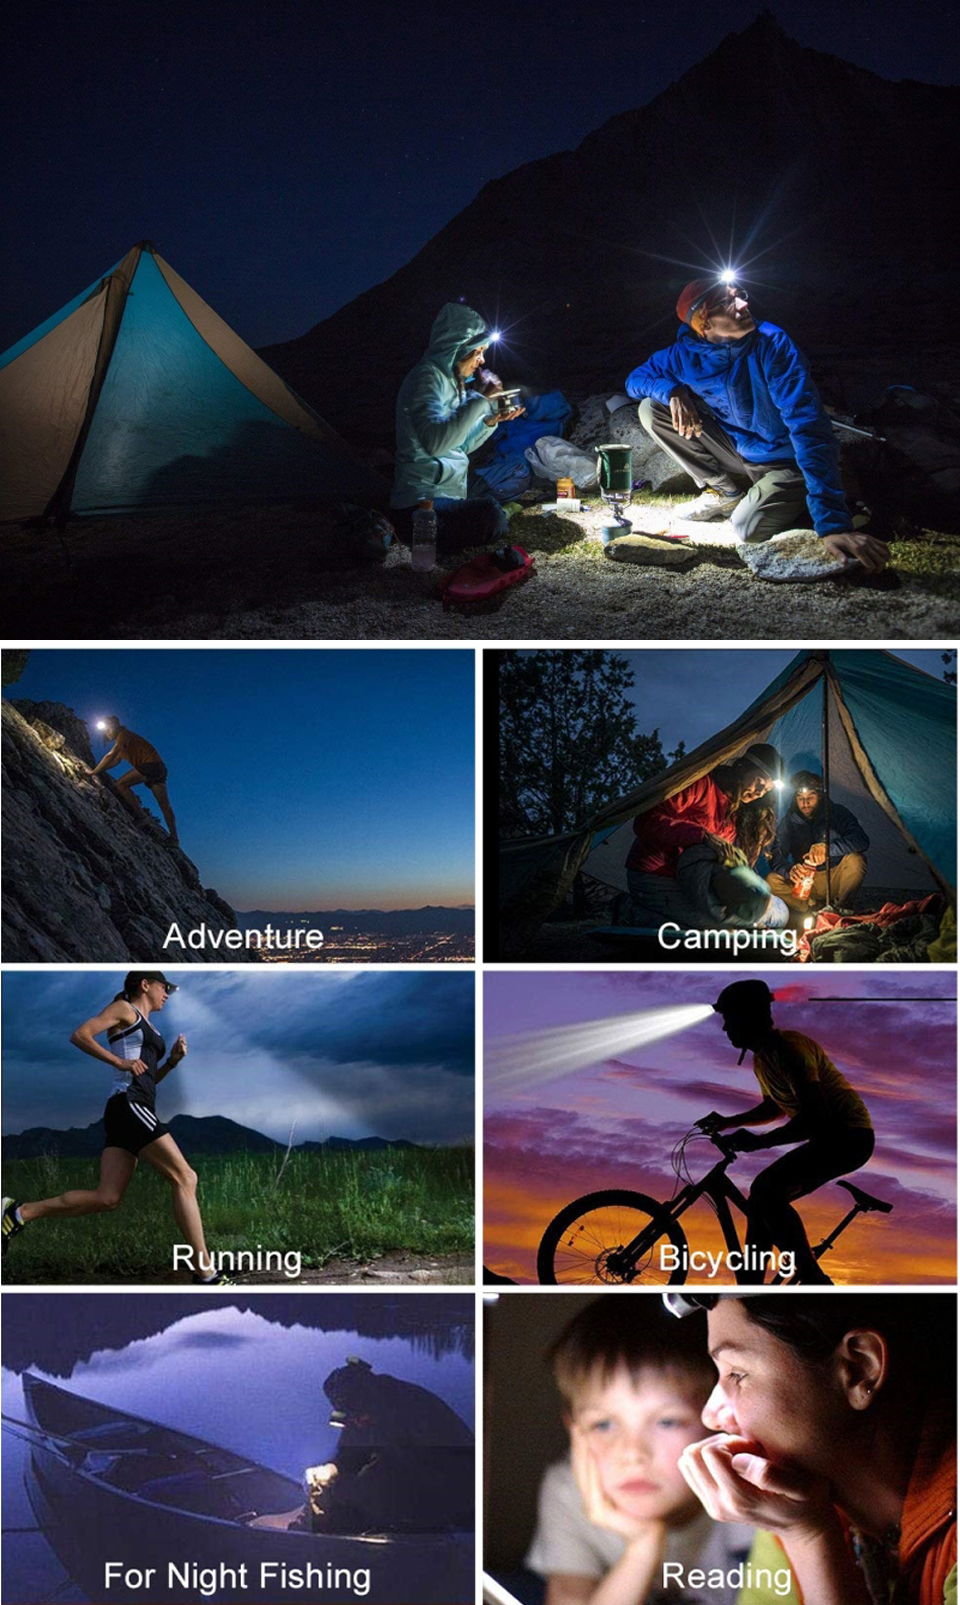 Adventure Camping Running Bicycling For Night Fishing Reading